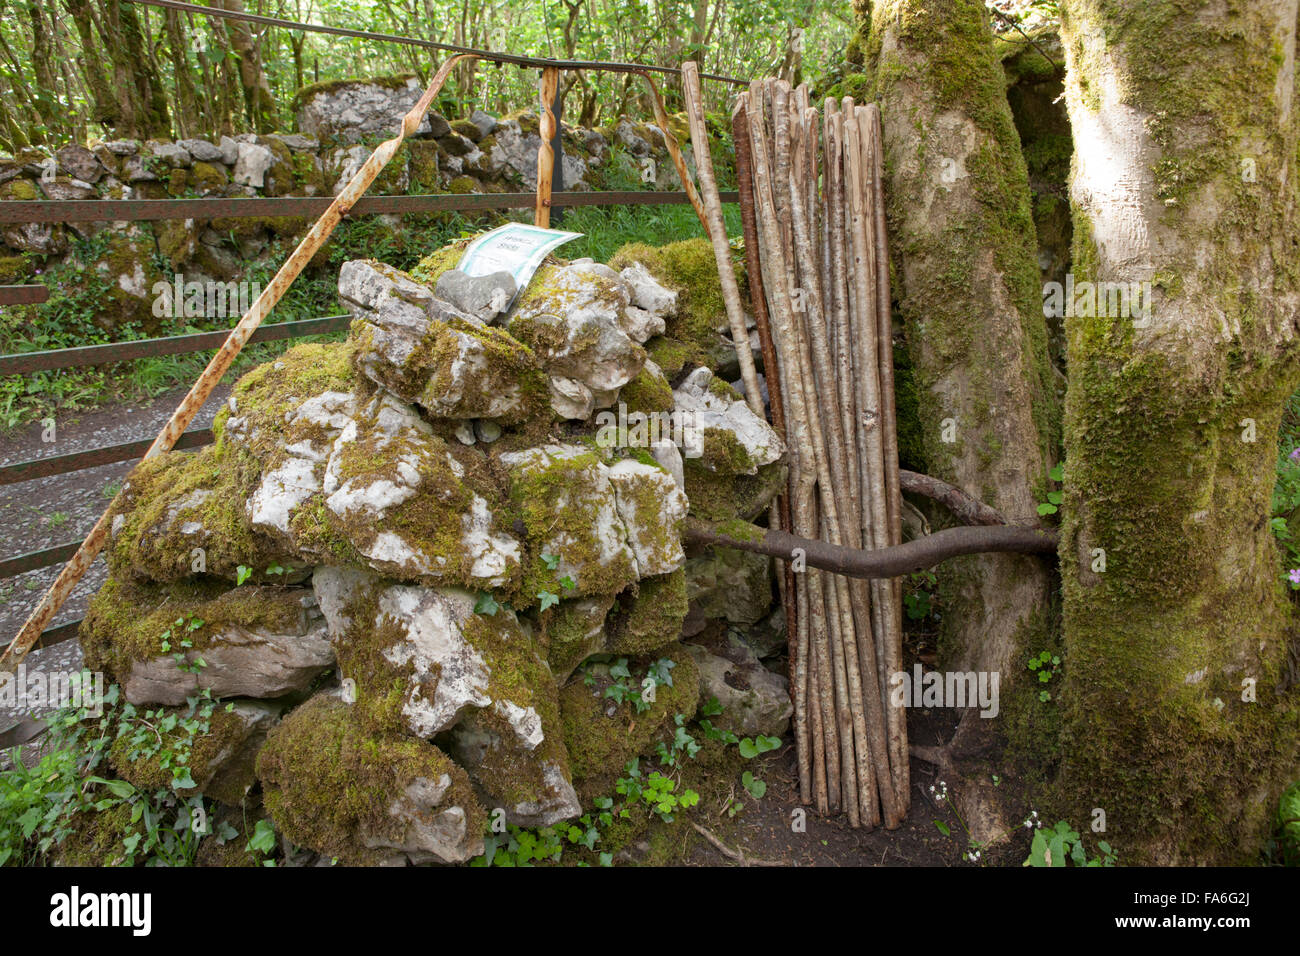 Hazel walking sticks stacked up and left for public use on the Mullaghmore loop walk, The Burren, Ireland - Stock Image